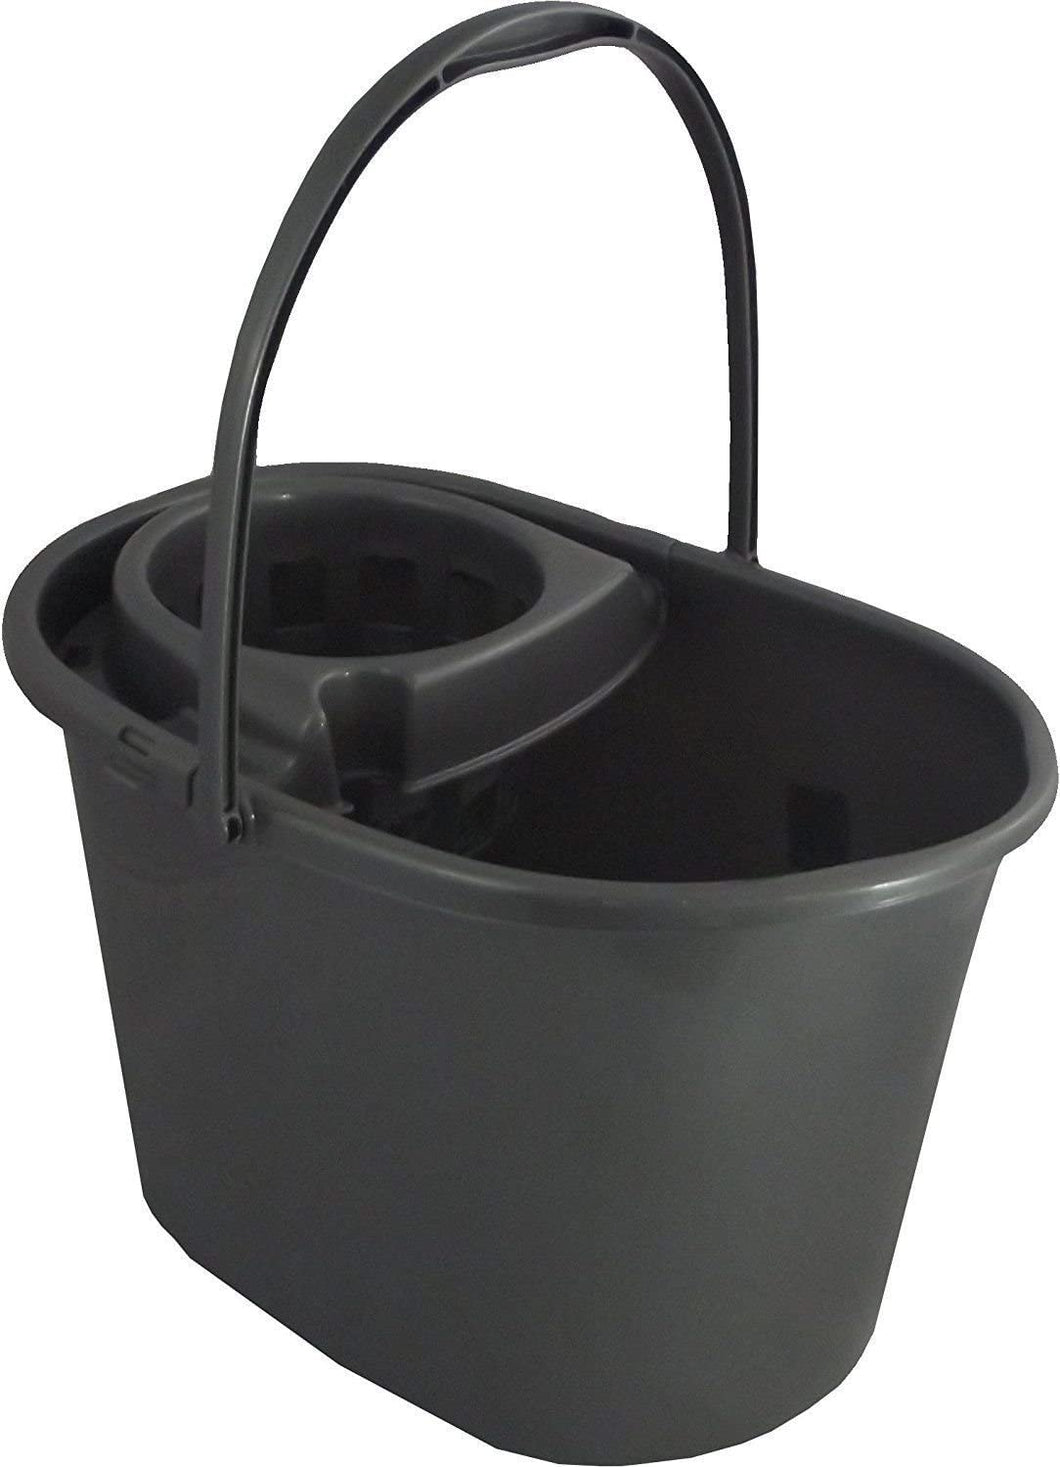 White Furze Plastic Floor Mop Bucket with Wringer, Silver